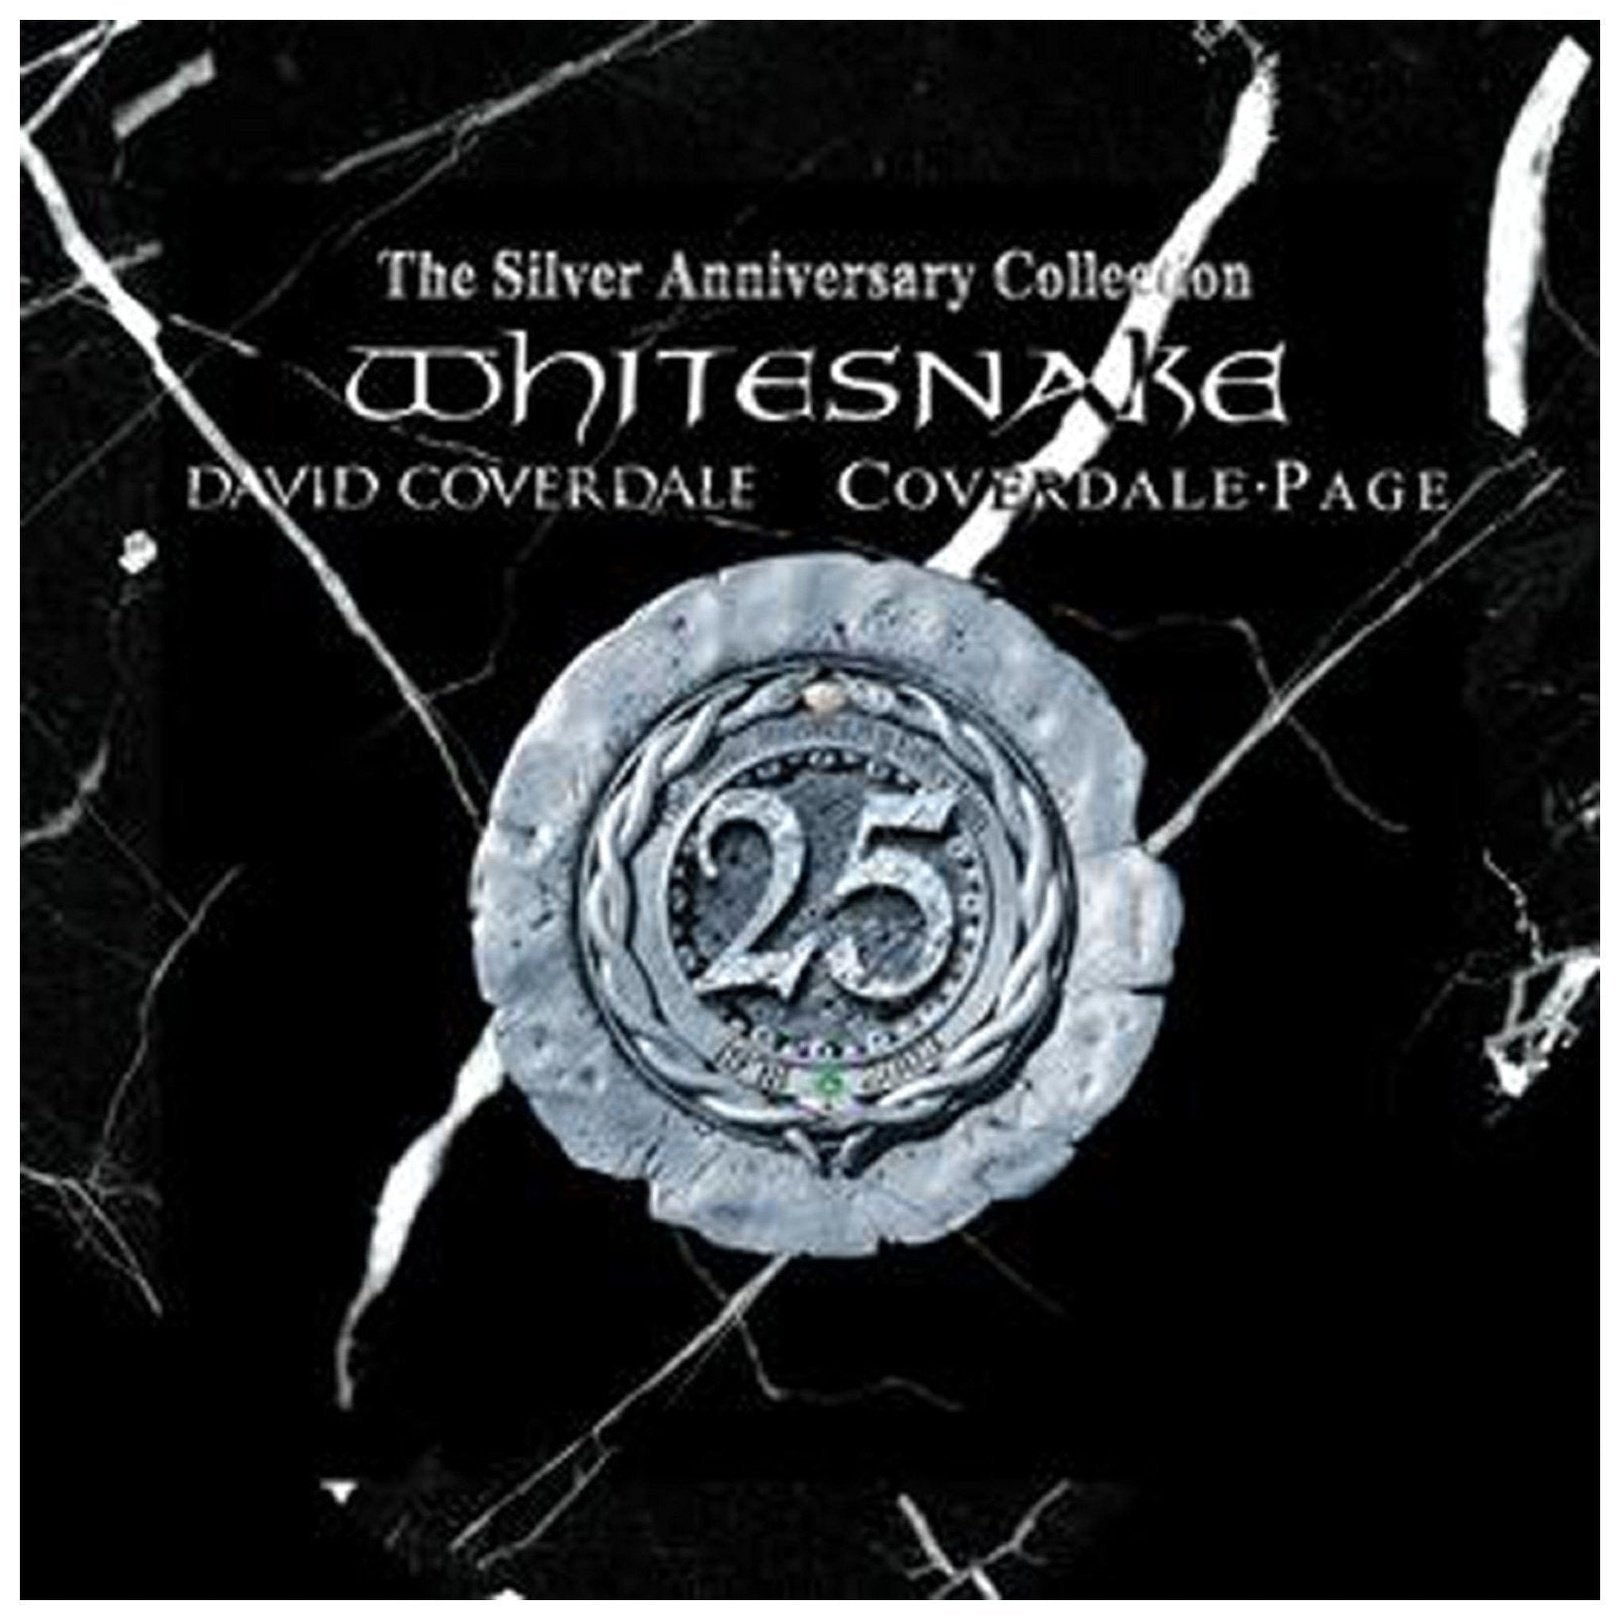 Whitesnake - Whitesnake - The Silver Anniversary Collection - 2 Cd